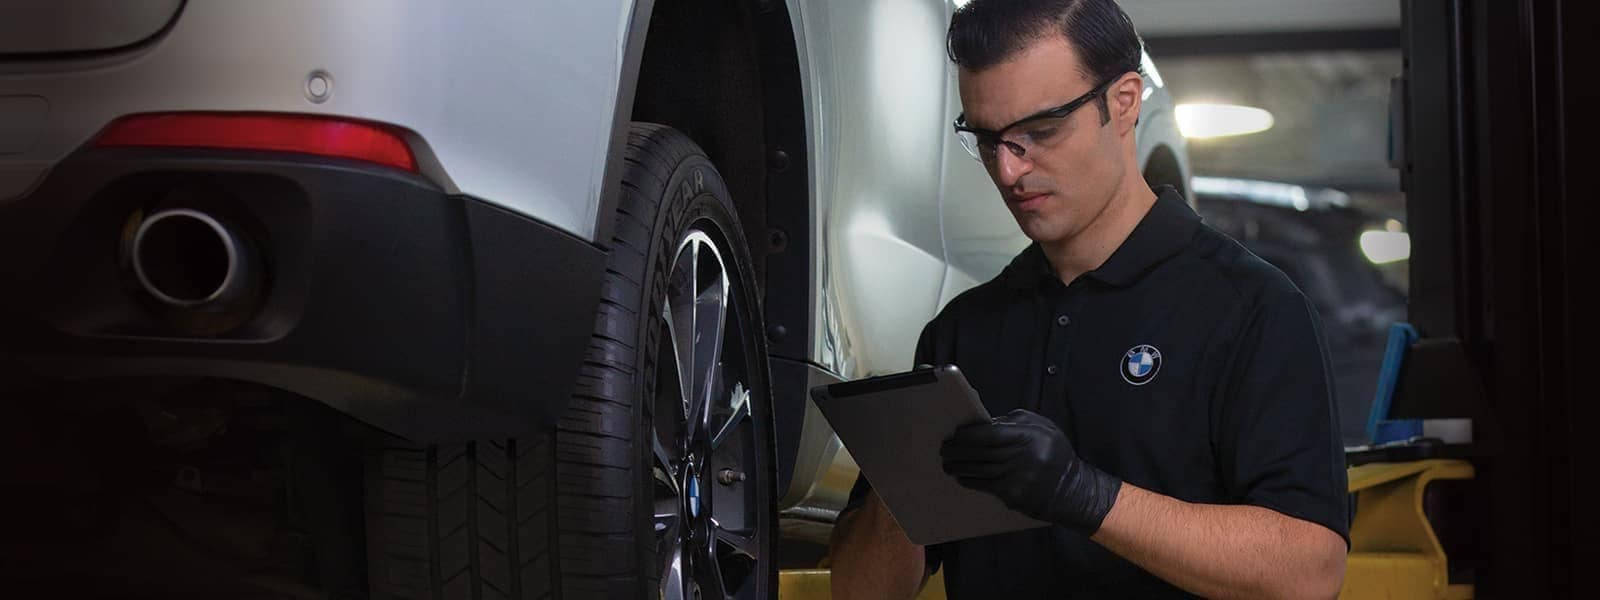 BMW Service Technician in service bay inspecting a BMW on a lift